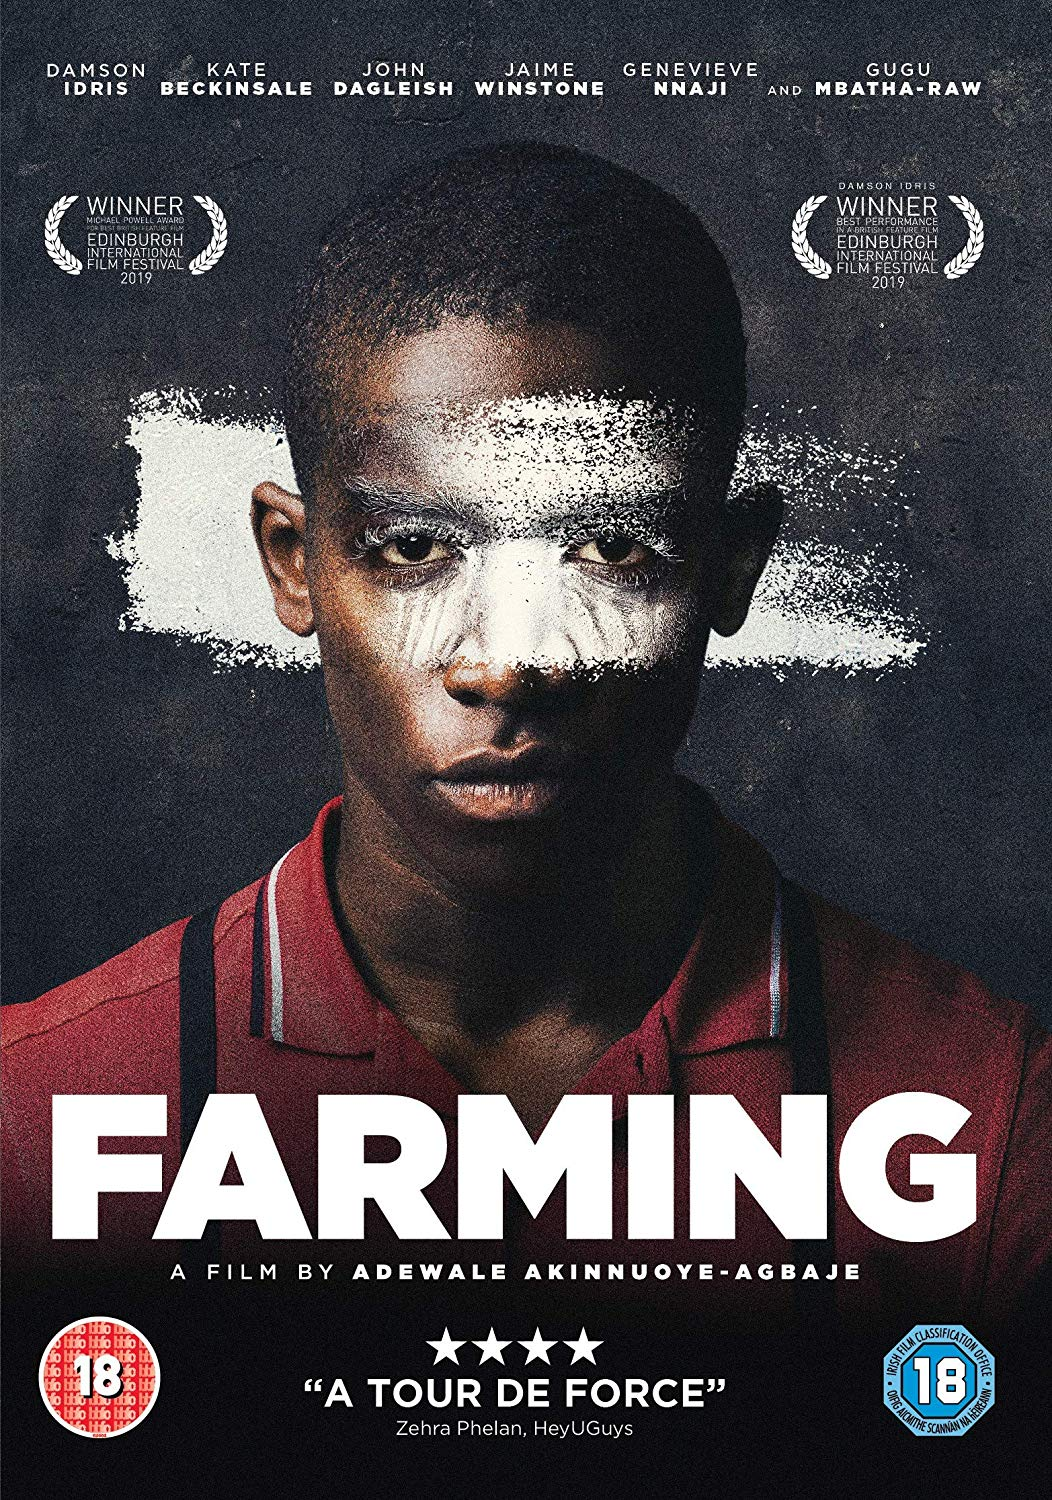 boom competitions - win Farming on DVD